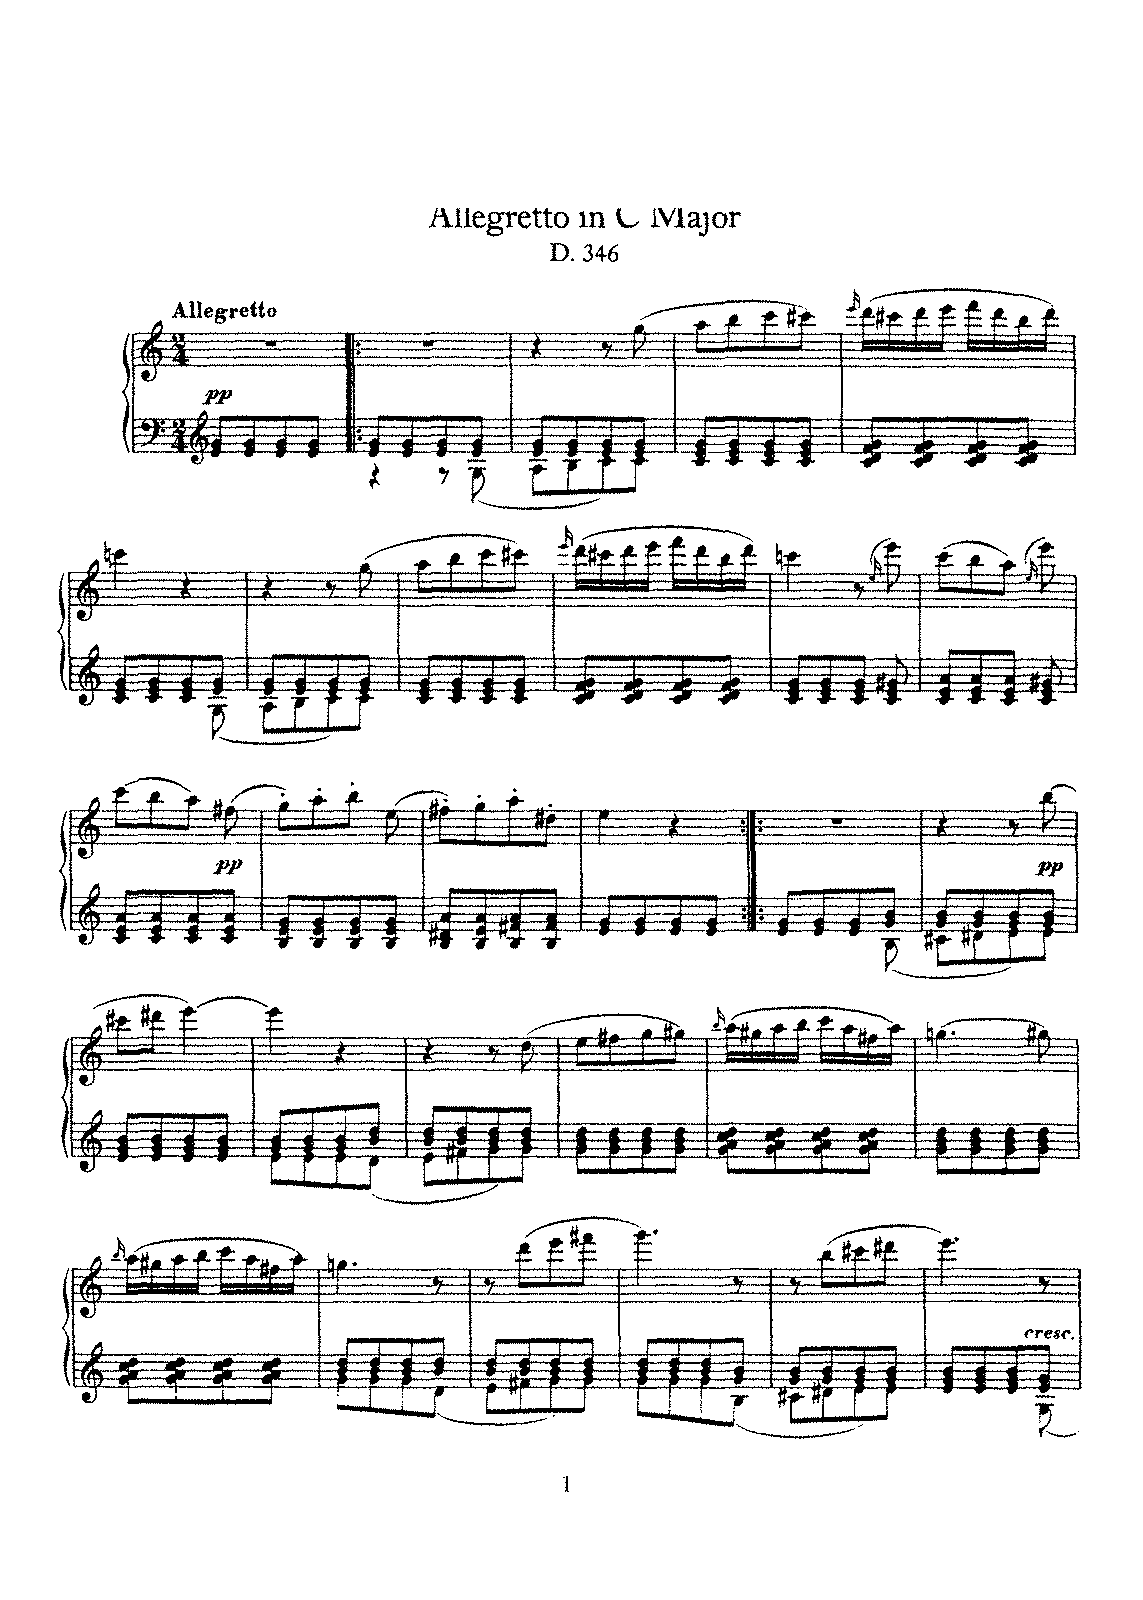 Schubert - D.346 - Allegretto in C Major.pdf